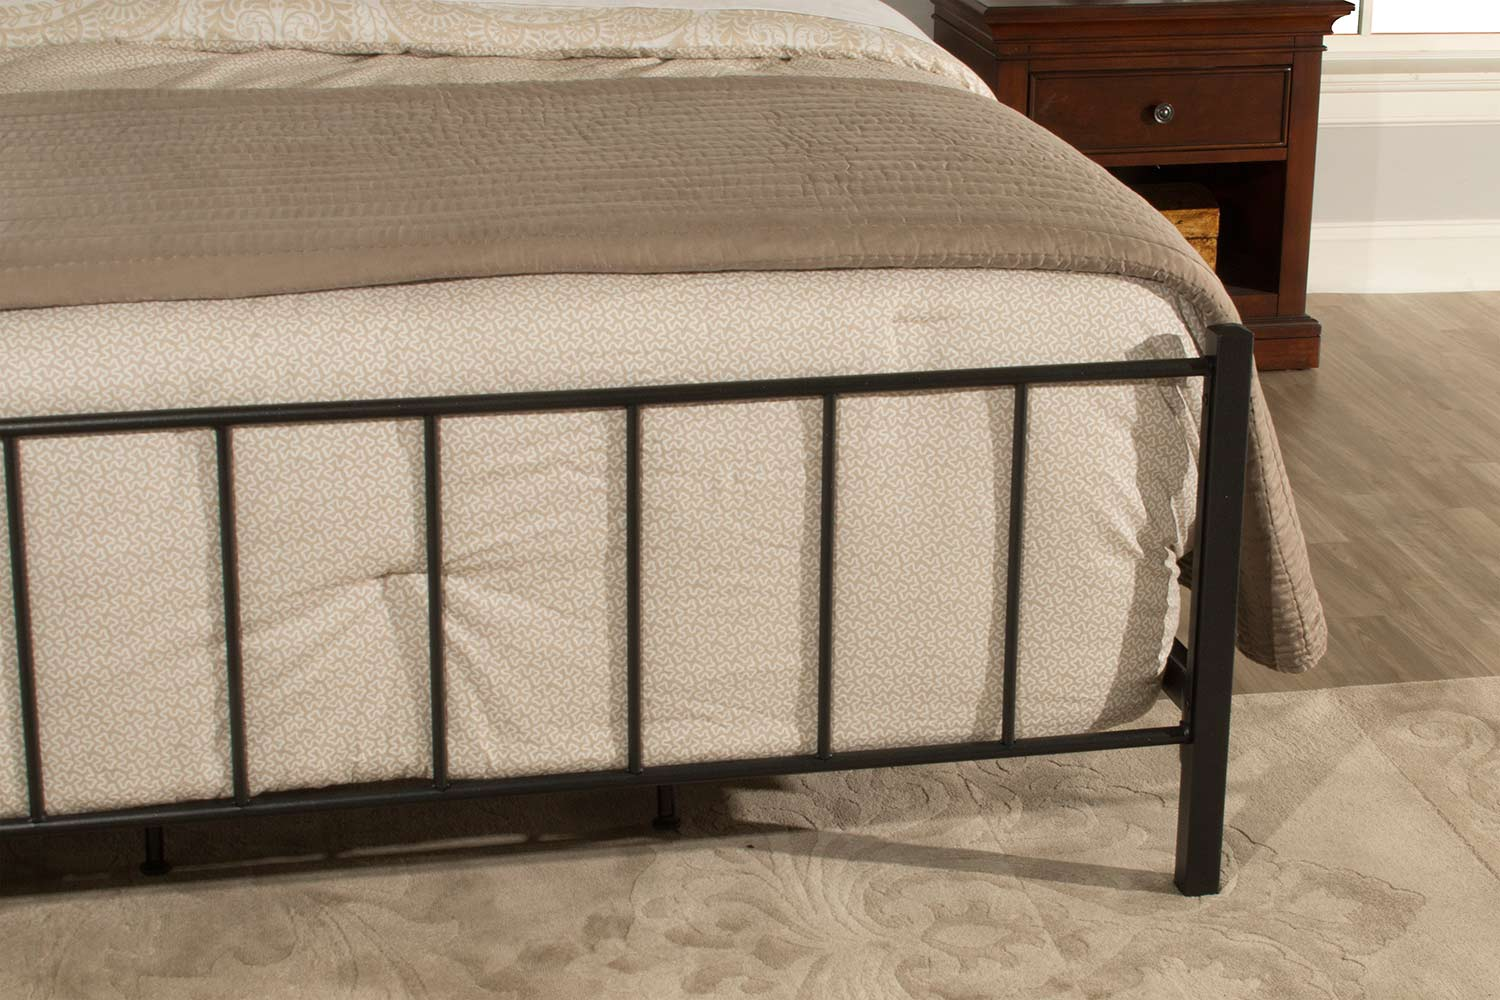 Hillsdale Kenosha Bed - Black Sparkle